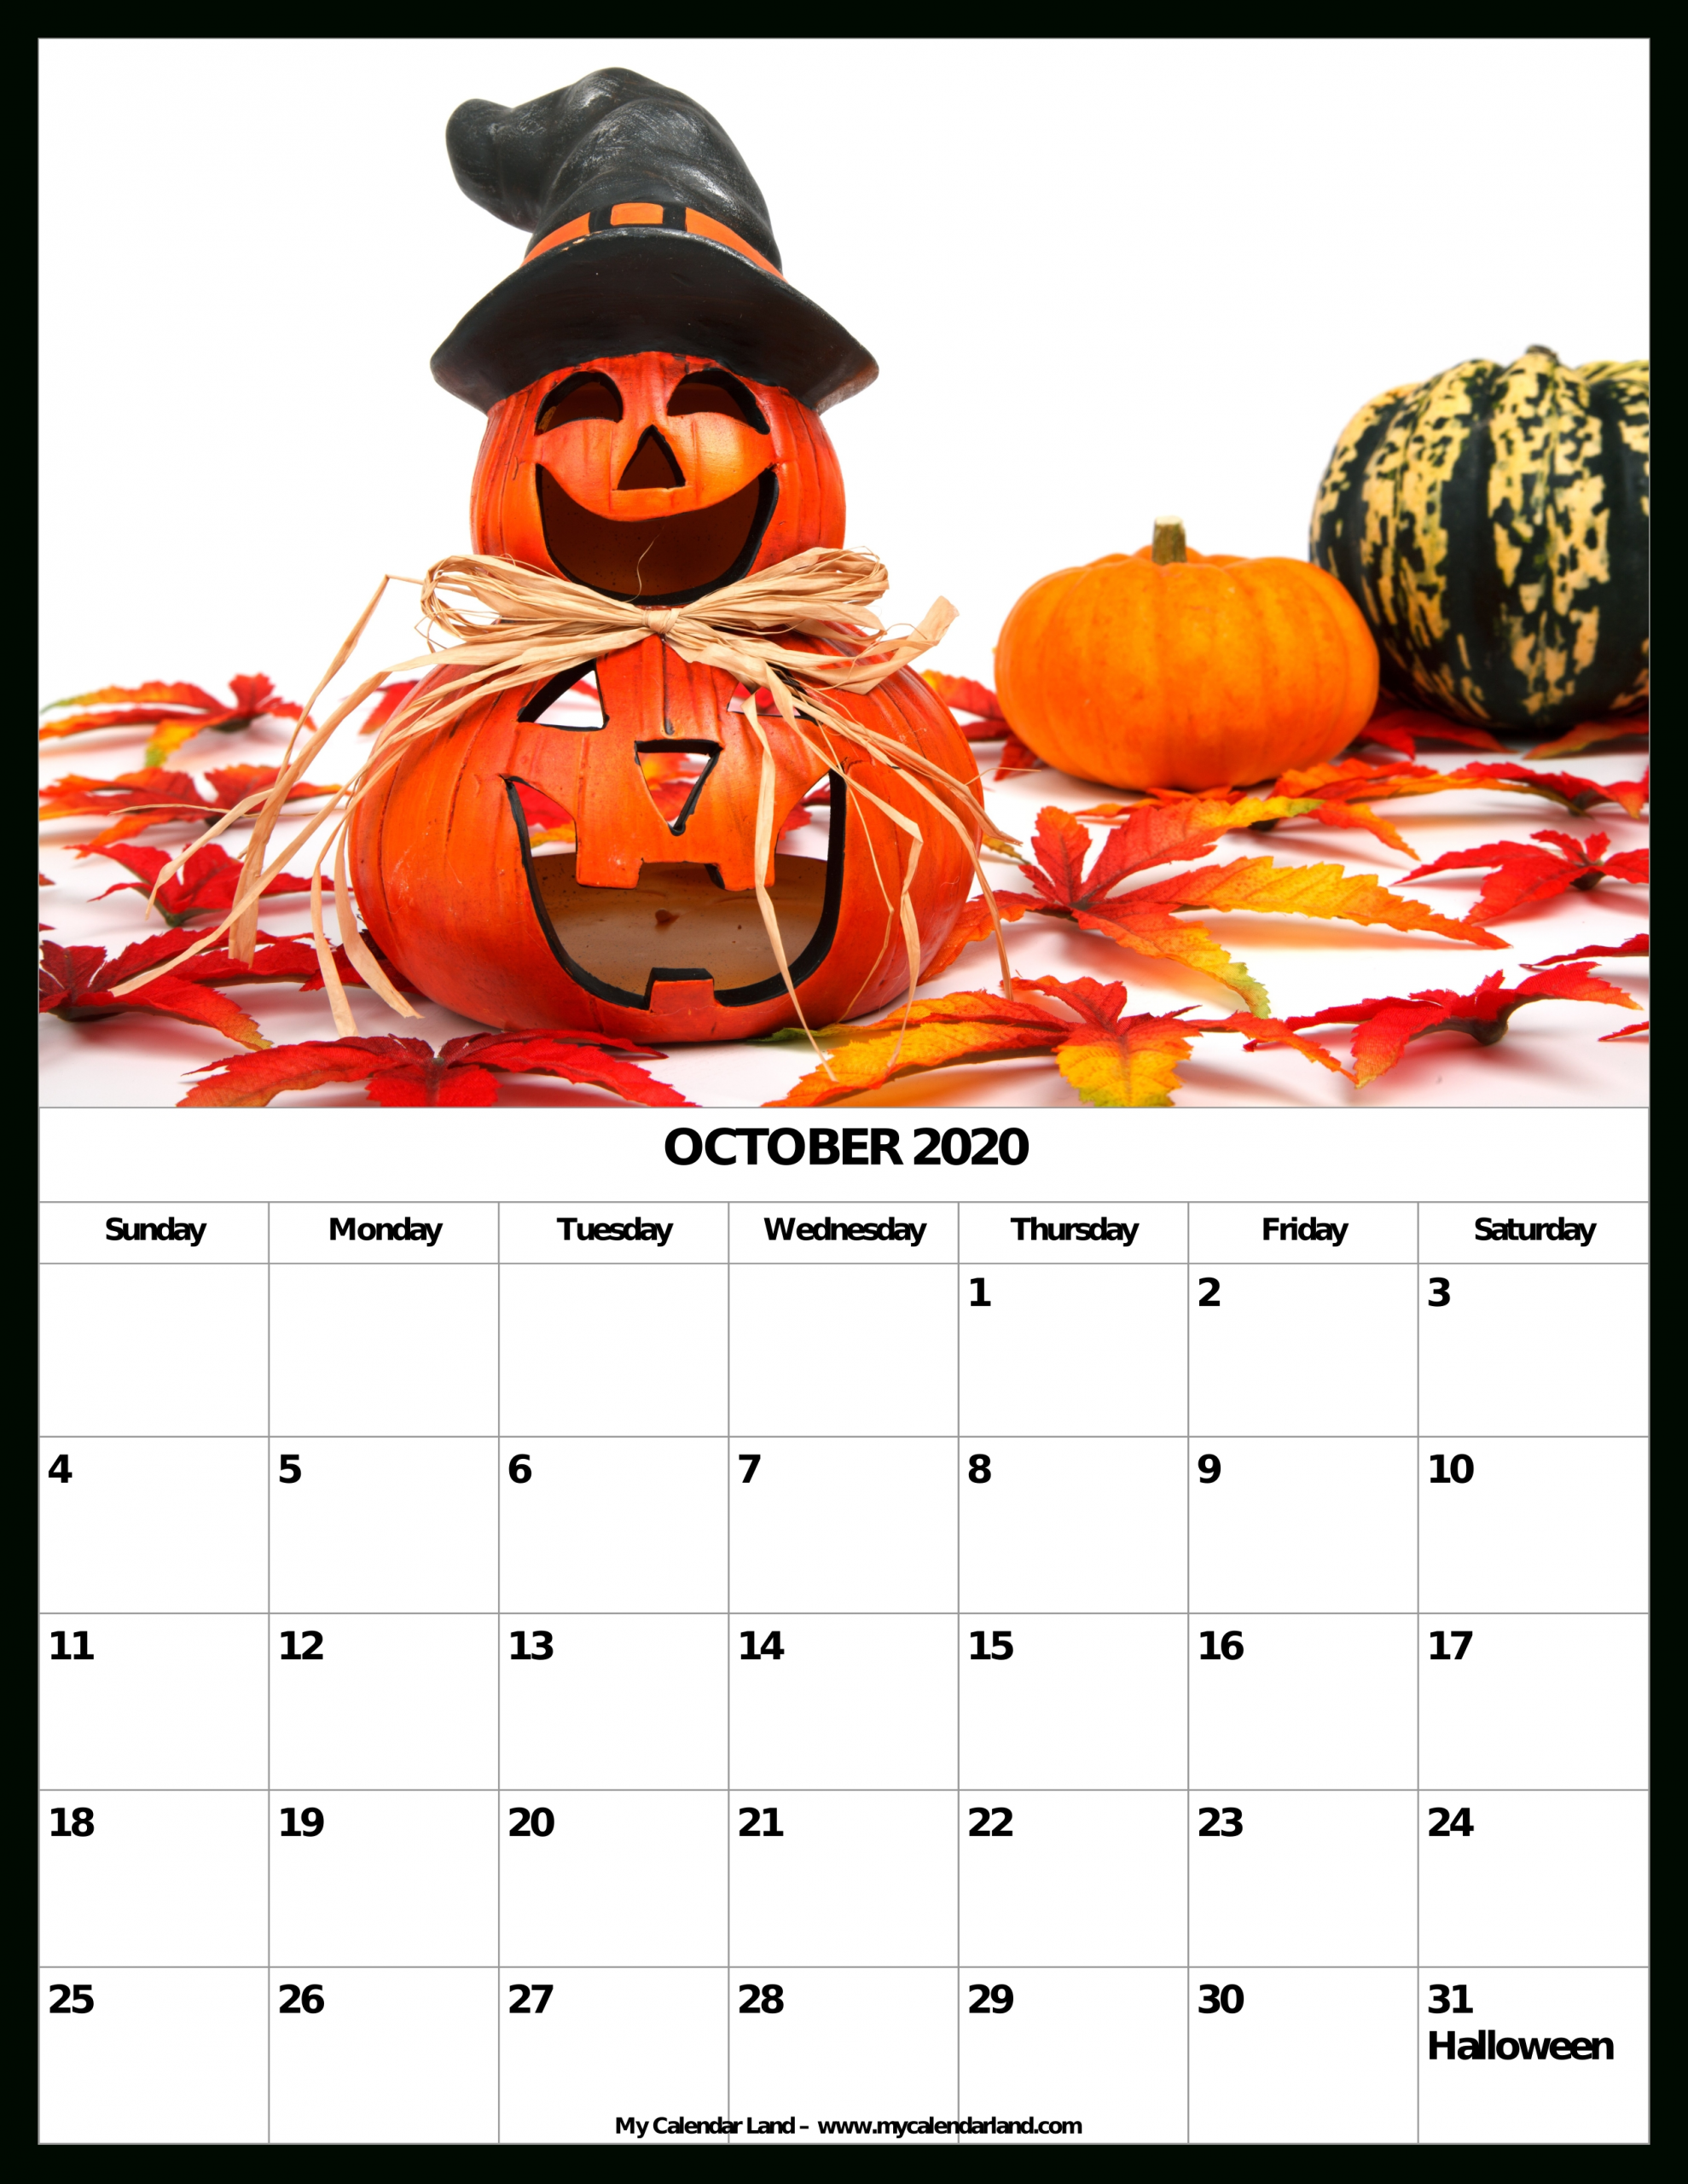 Pick October Outlook Calendar